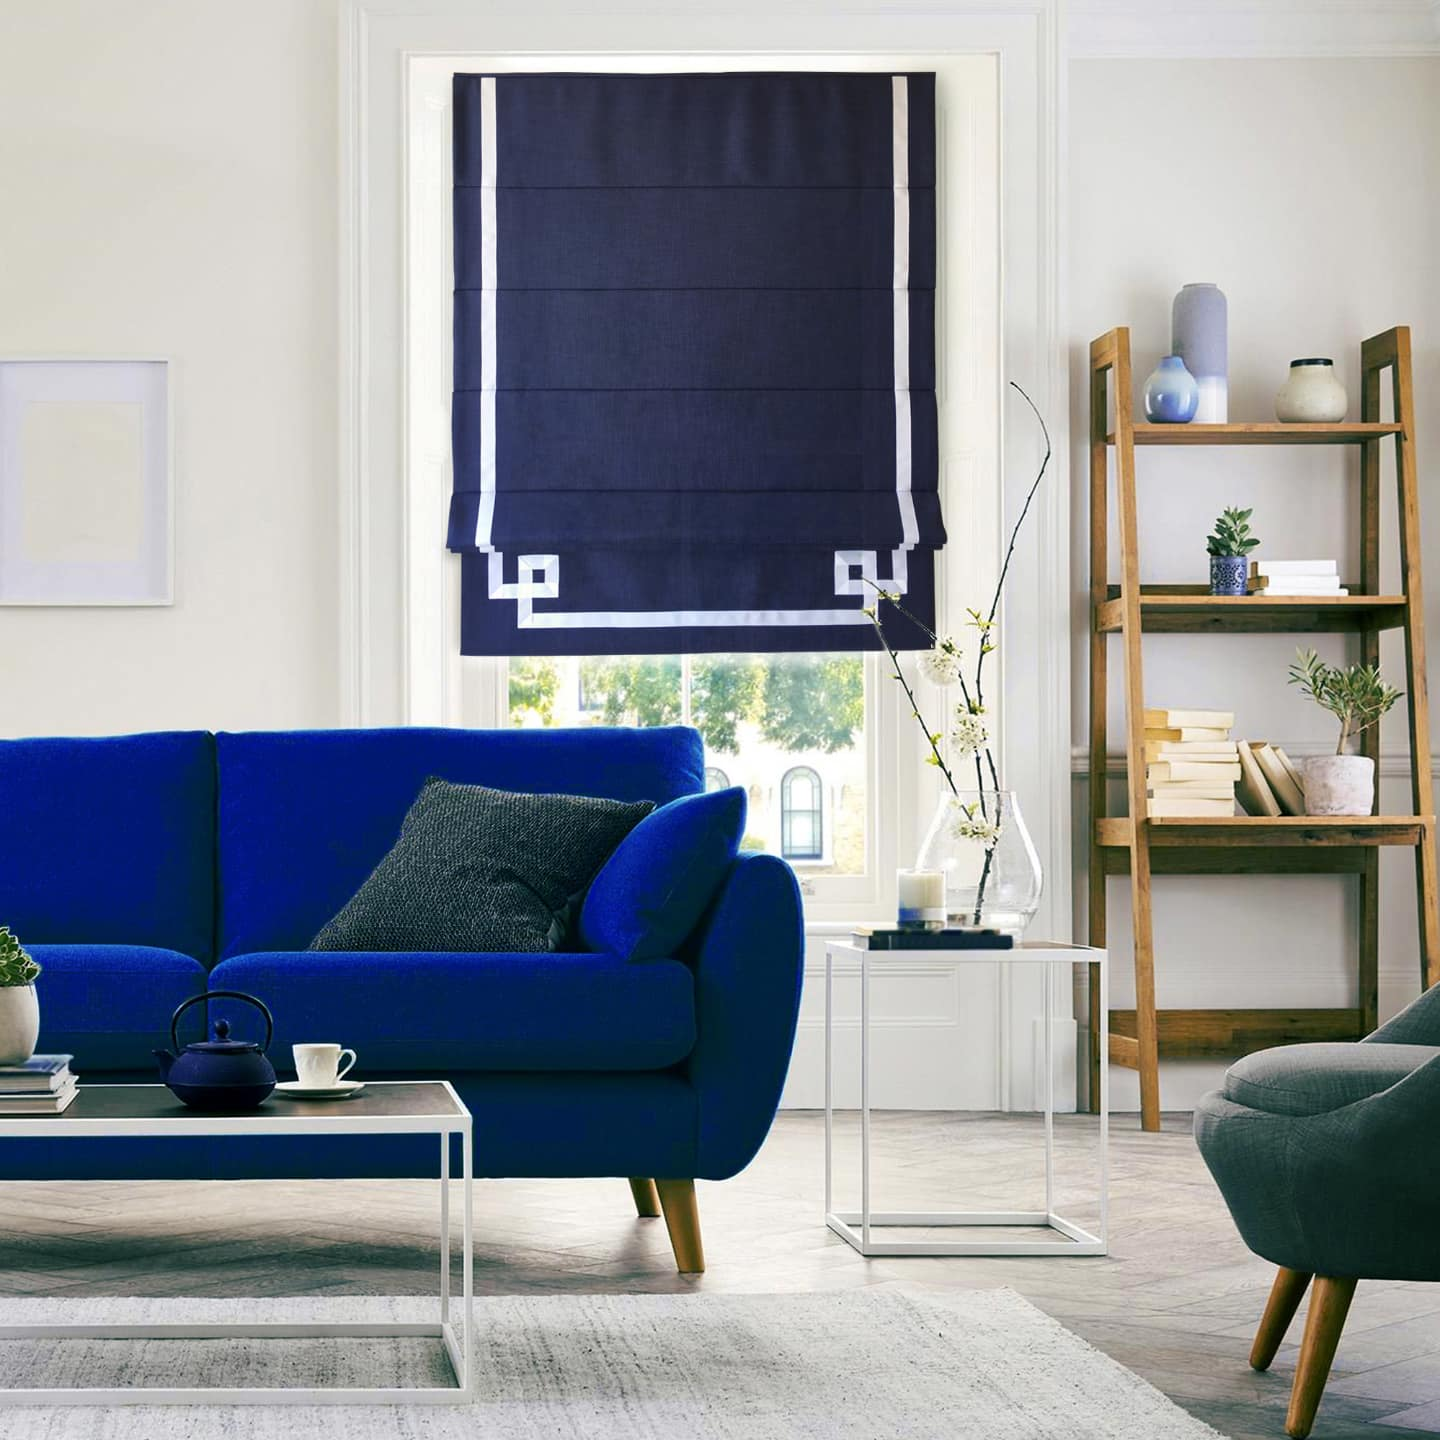 Window Treatments Trends: What's In and Out of Style? Blue colored curtains and sofa for interior accent